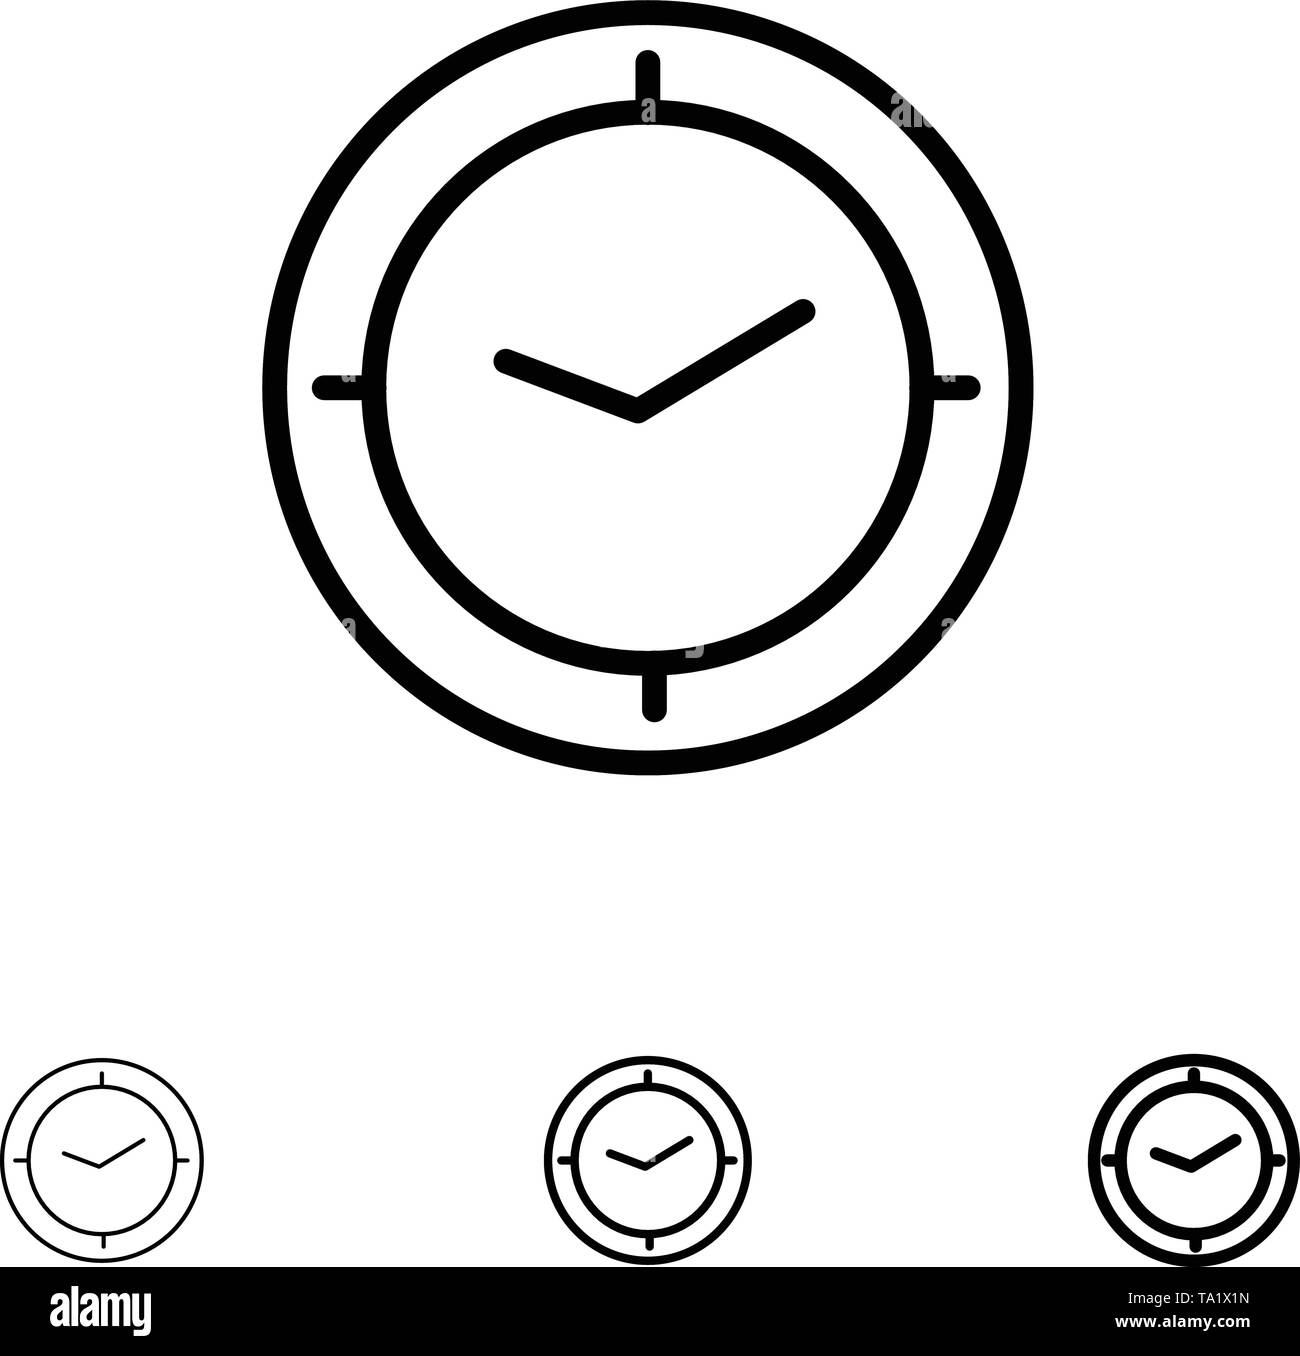 Hand Stop Clock Black and White Stock Photos & Images - Alamy